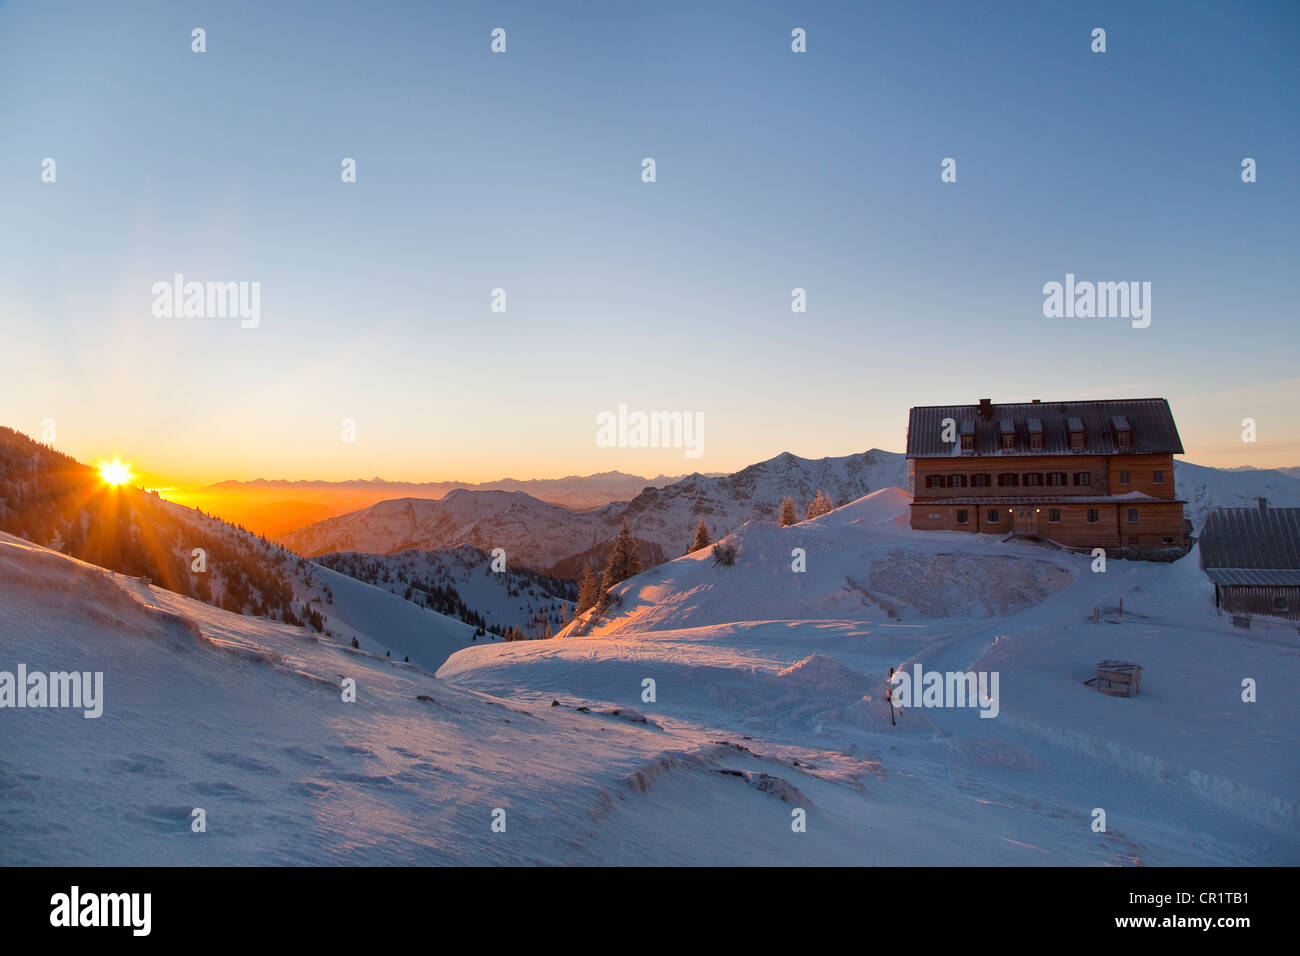 House on hill in snowy landscape - Stock Image